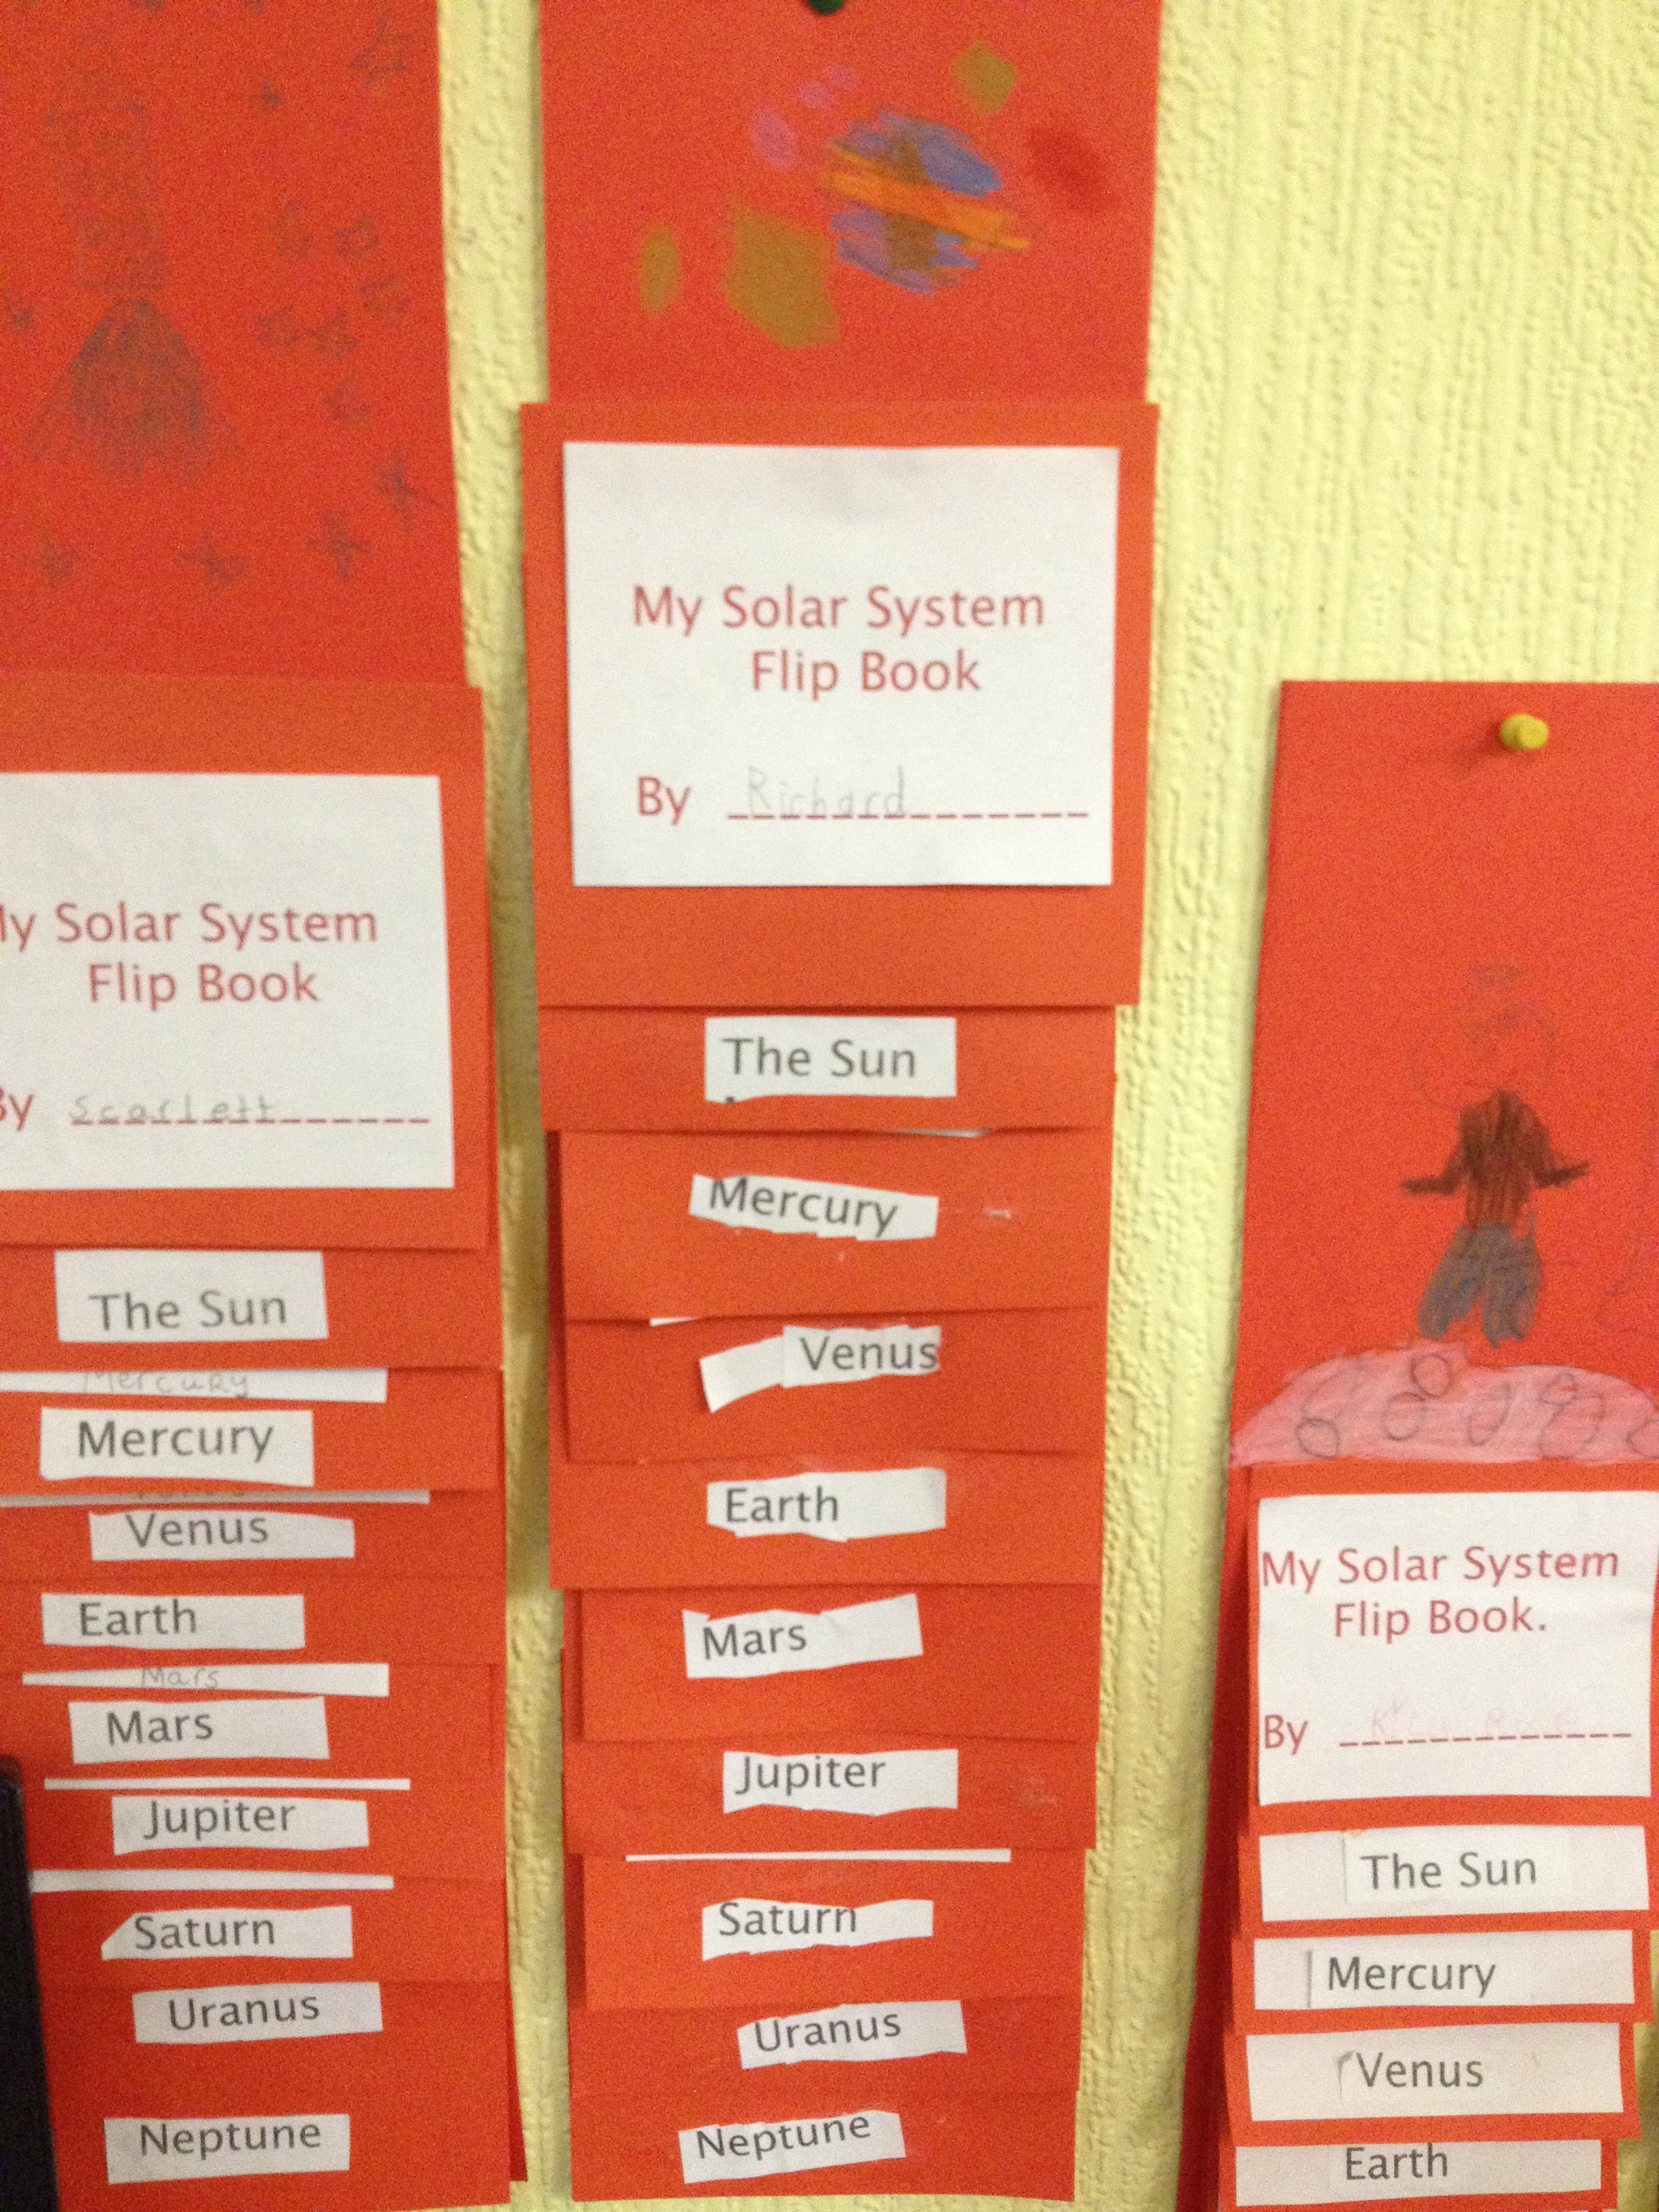 Solar System Flip Book Printable - Pics about space